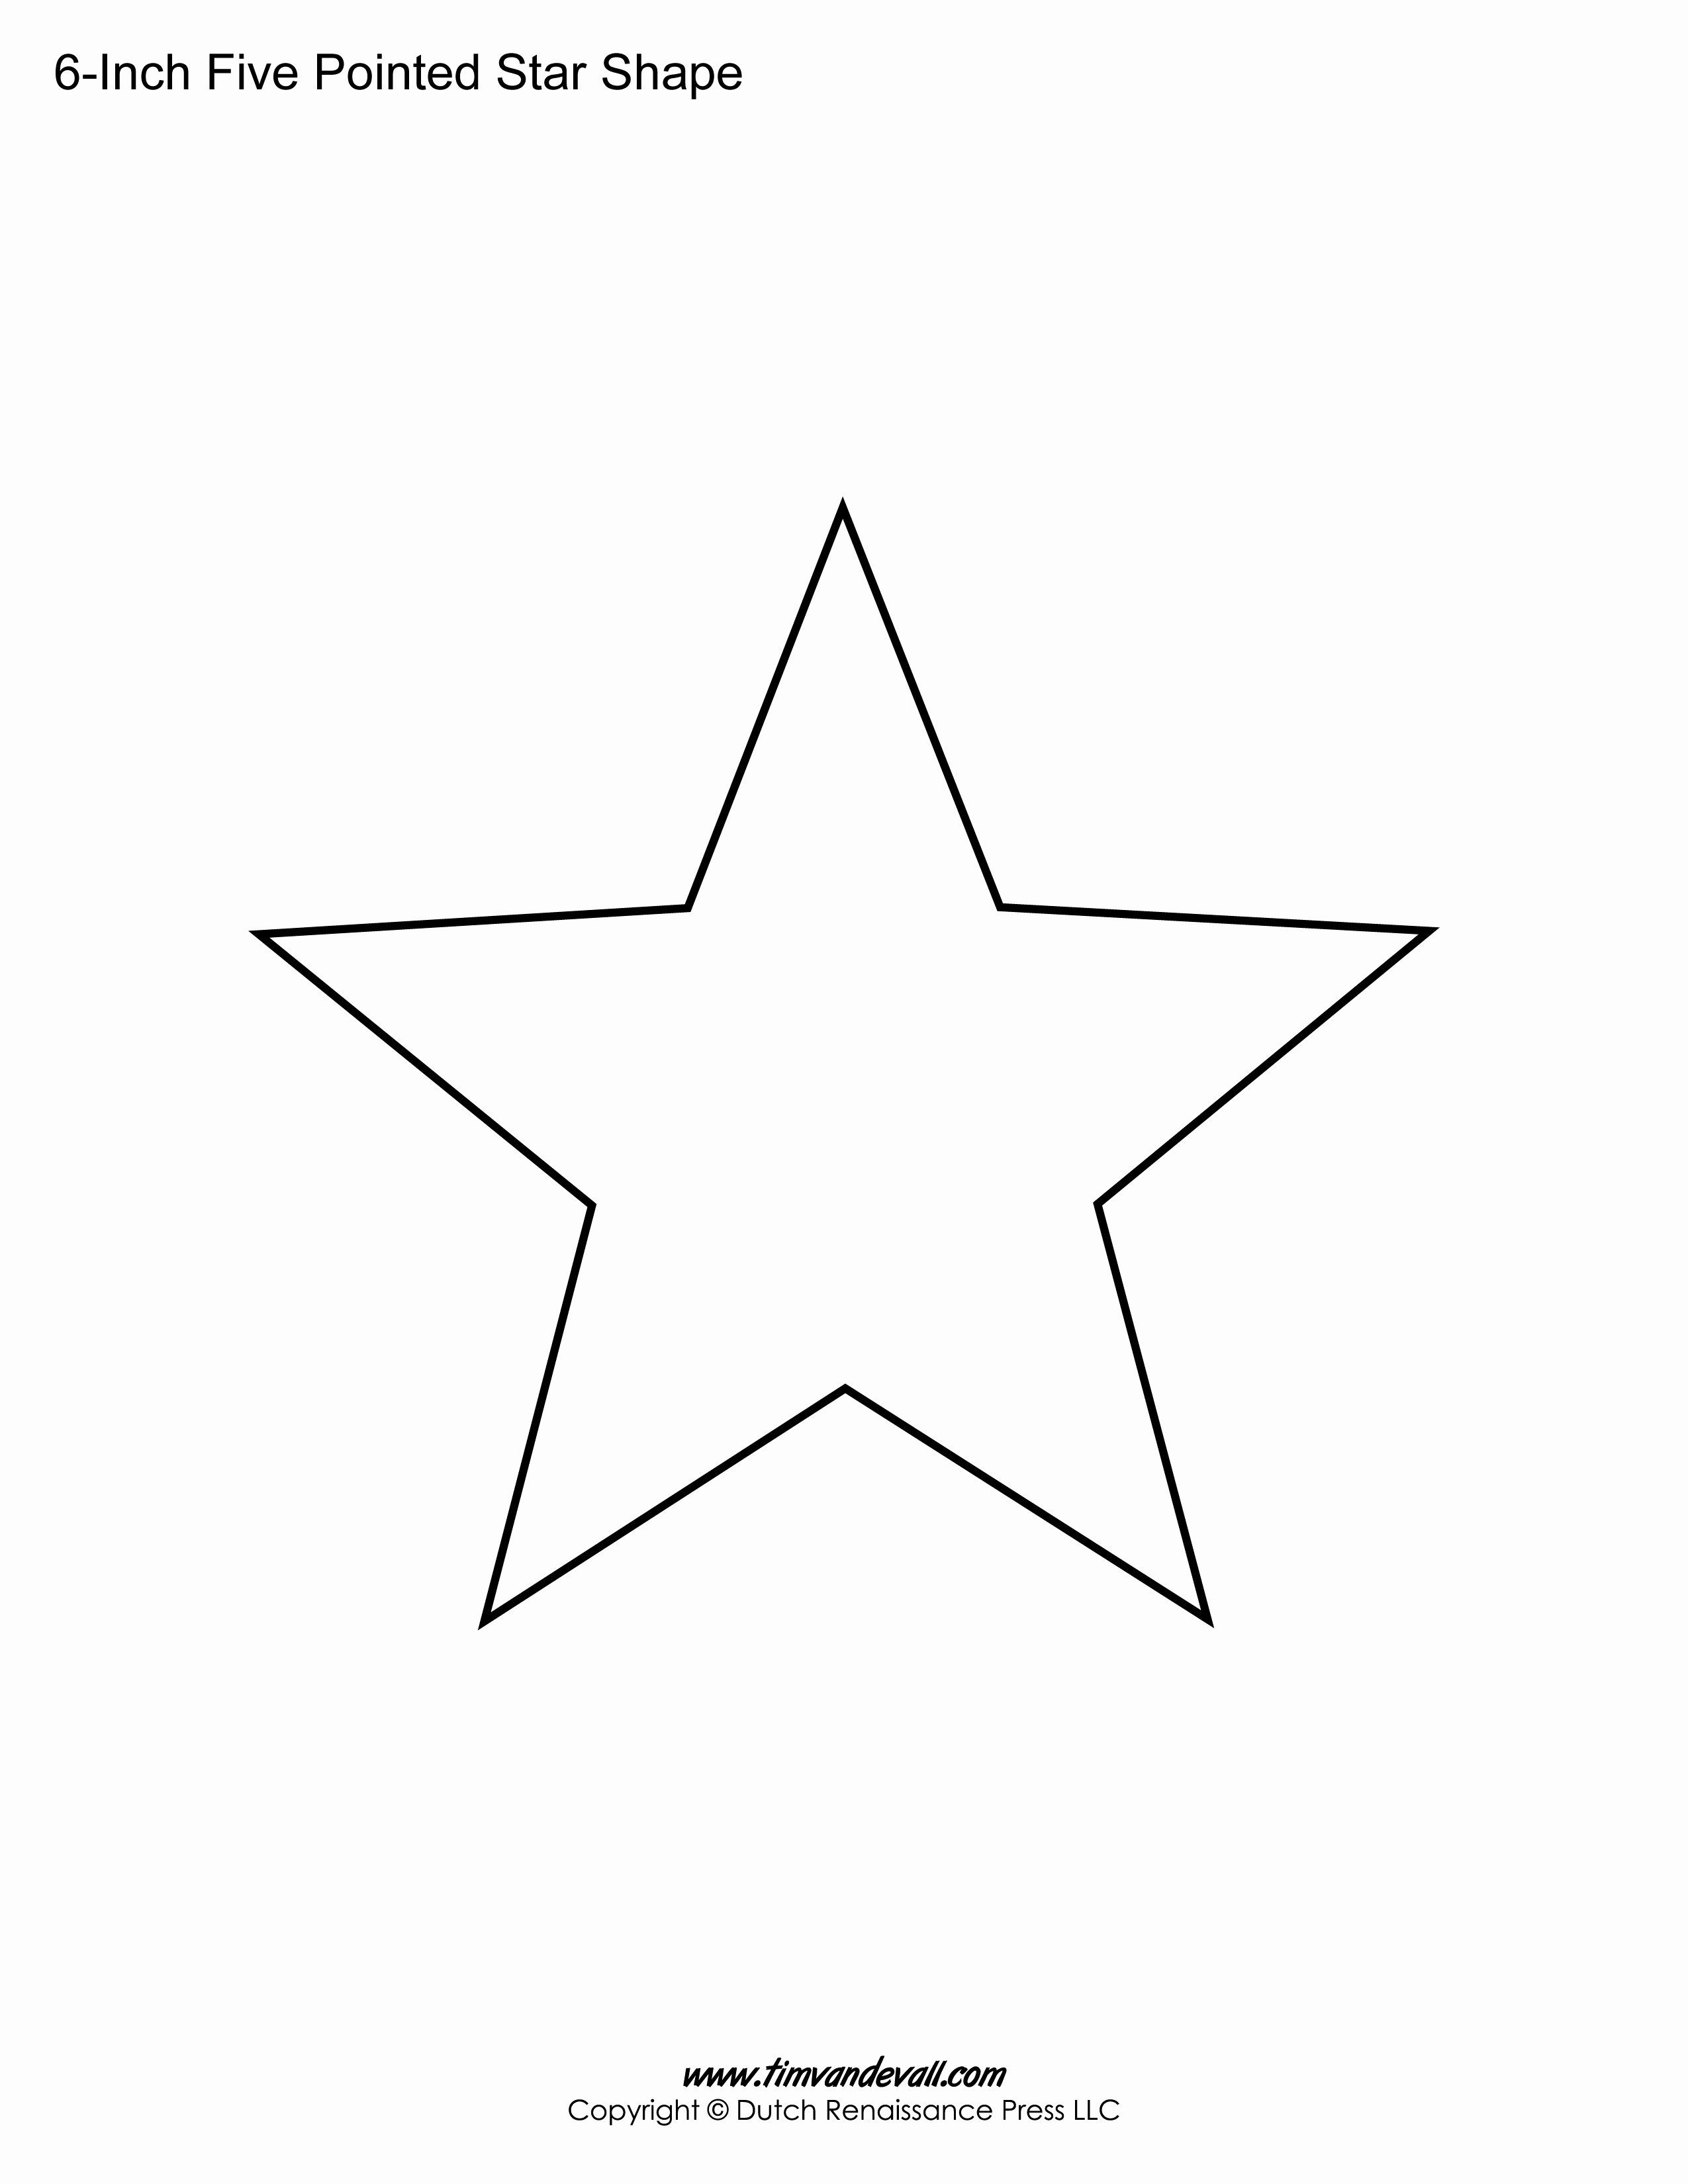 3 Inch Star Template Luxury 12 Best S Of 3d 5 Point Star Template 3d Paper Star Peterainsworth Star Template Star Template Printable Five Pointed Star